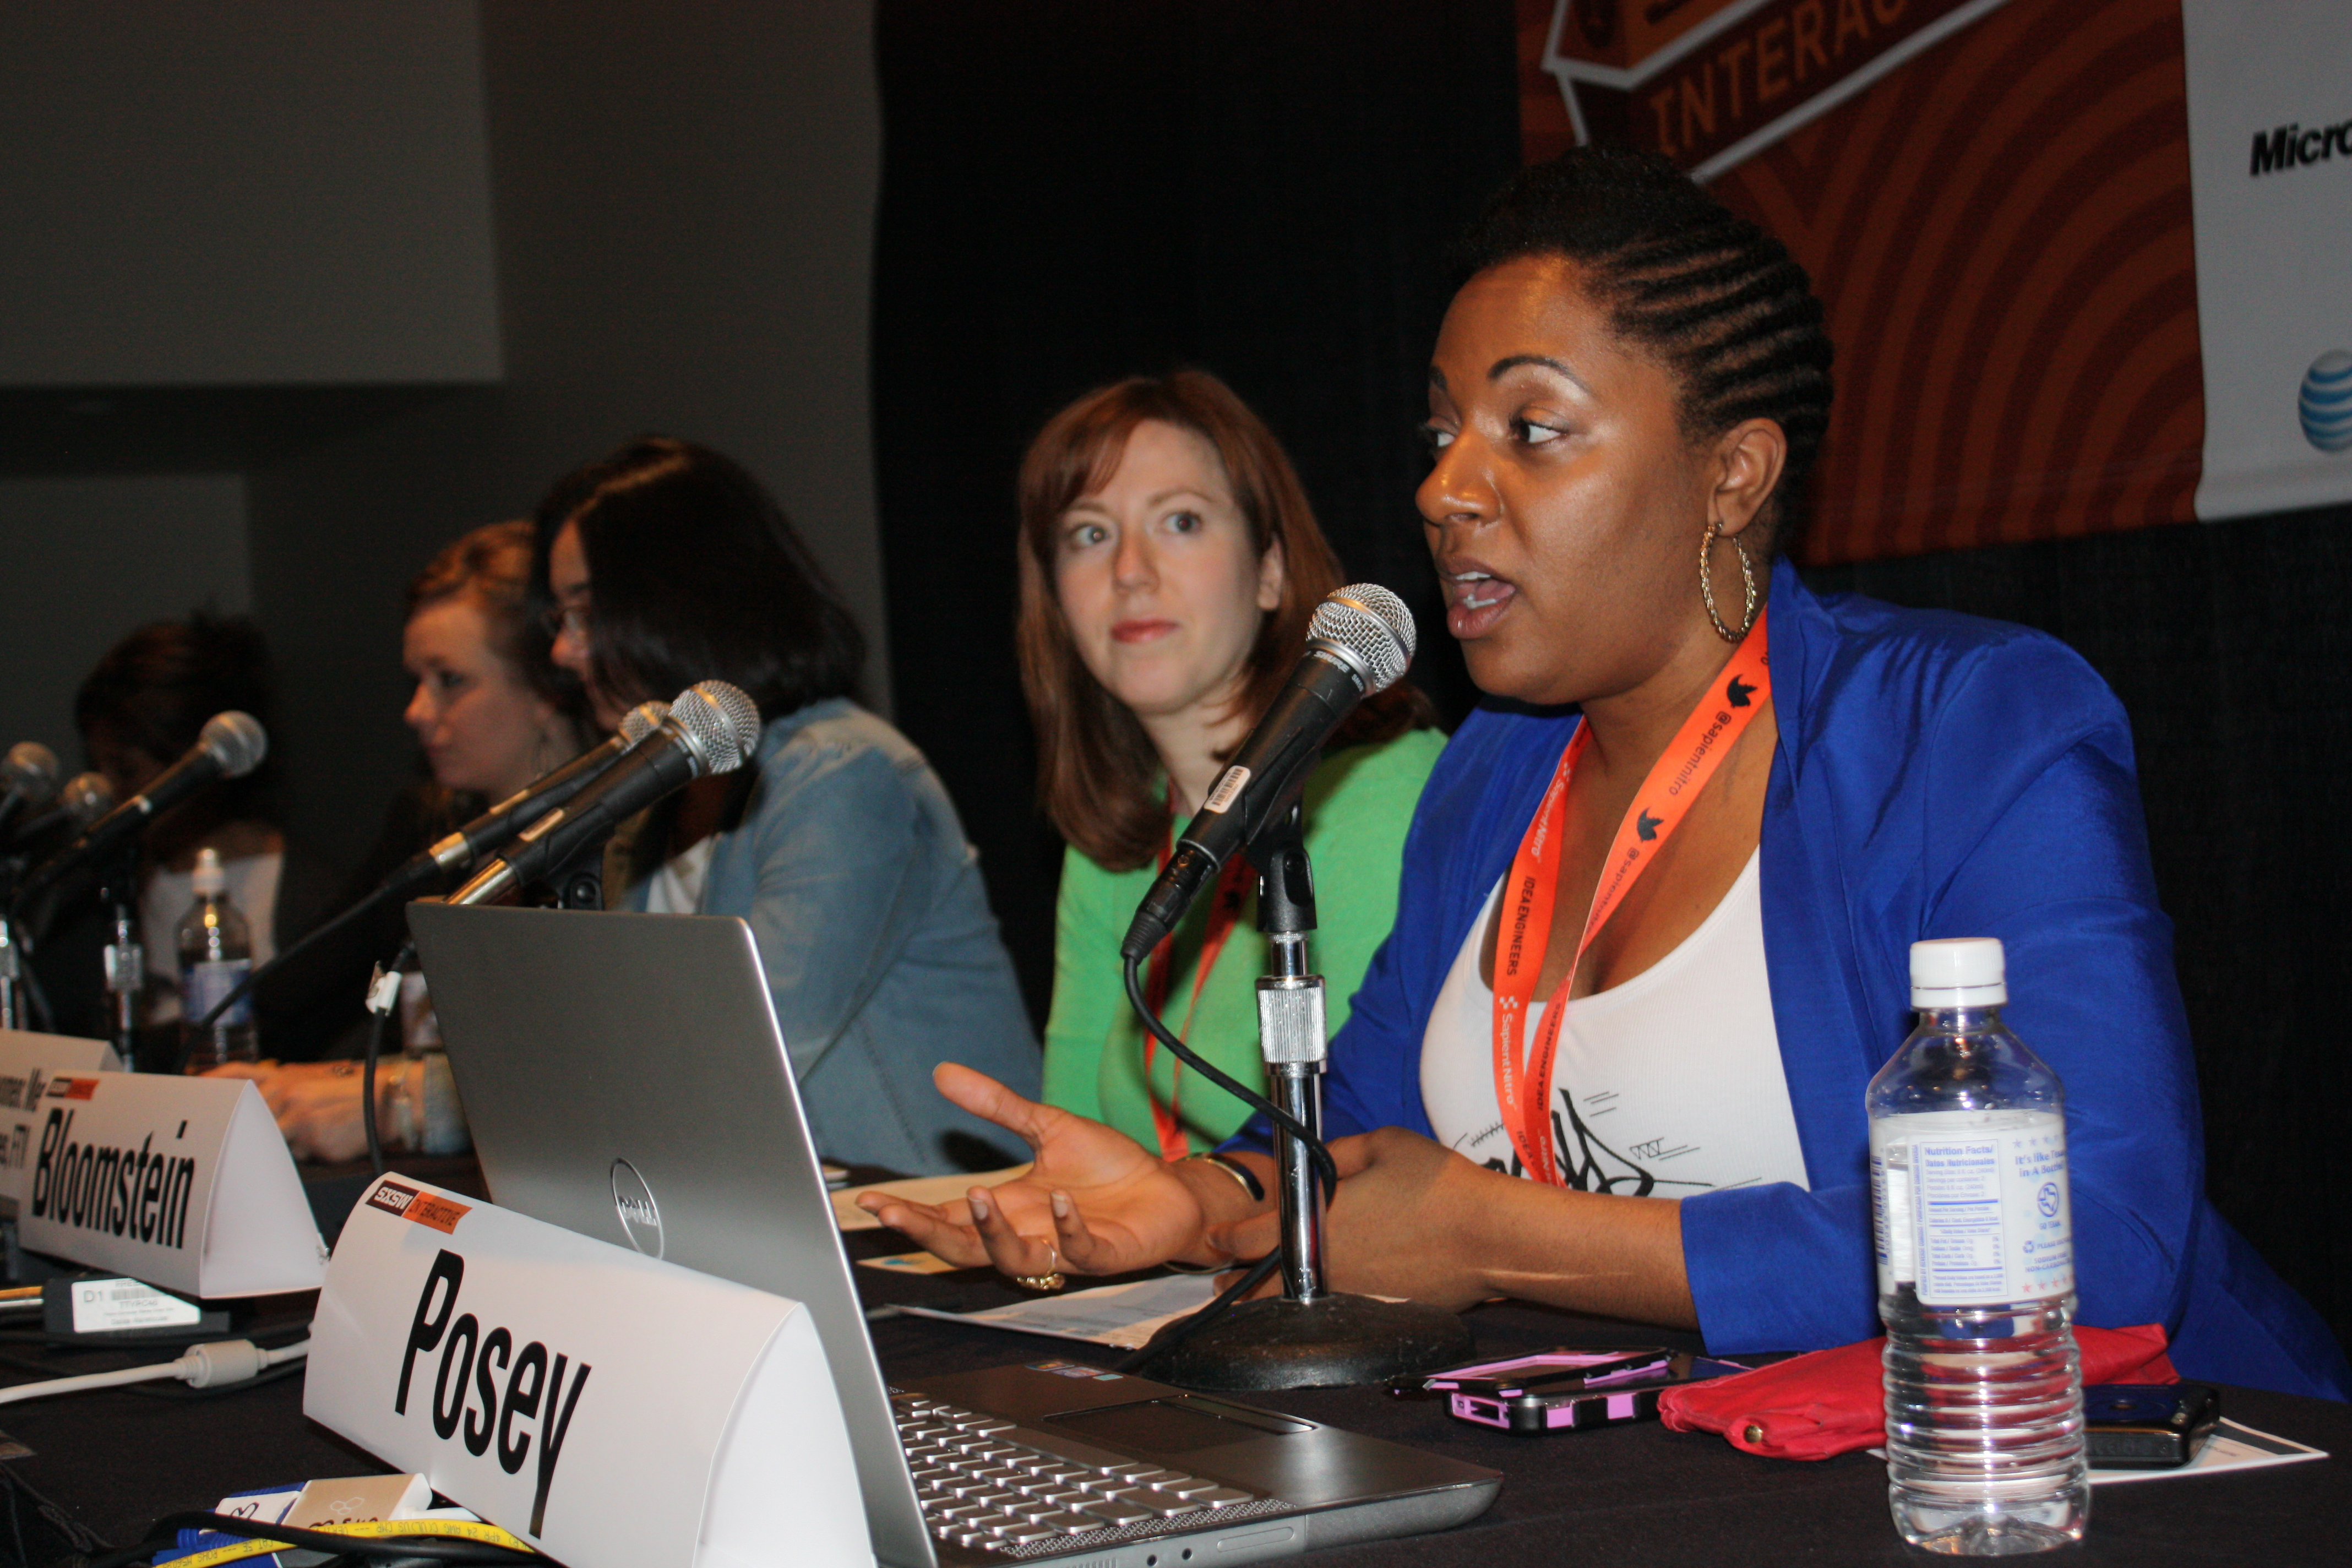 Founder of Tech by Superwomen Cathryn Posey and panelists explore the keys to fostering a successful and worthwhile mentorship experience  (Image: Mary Pryor)